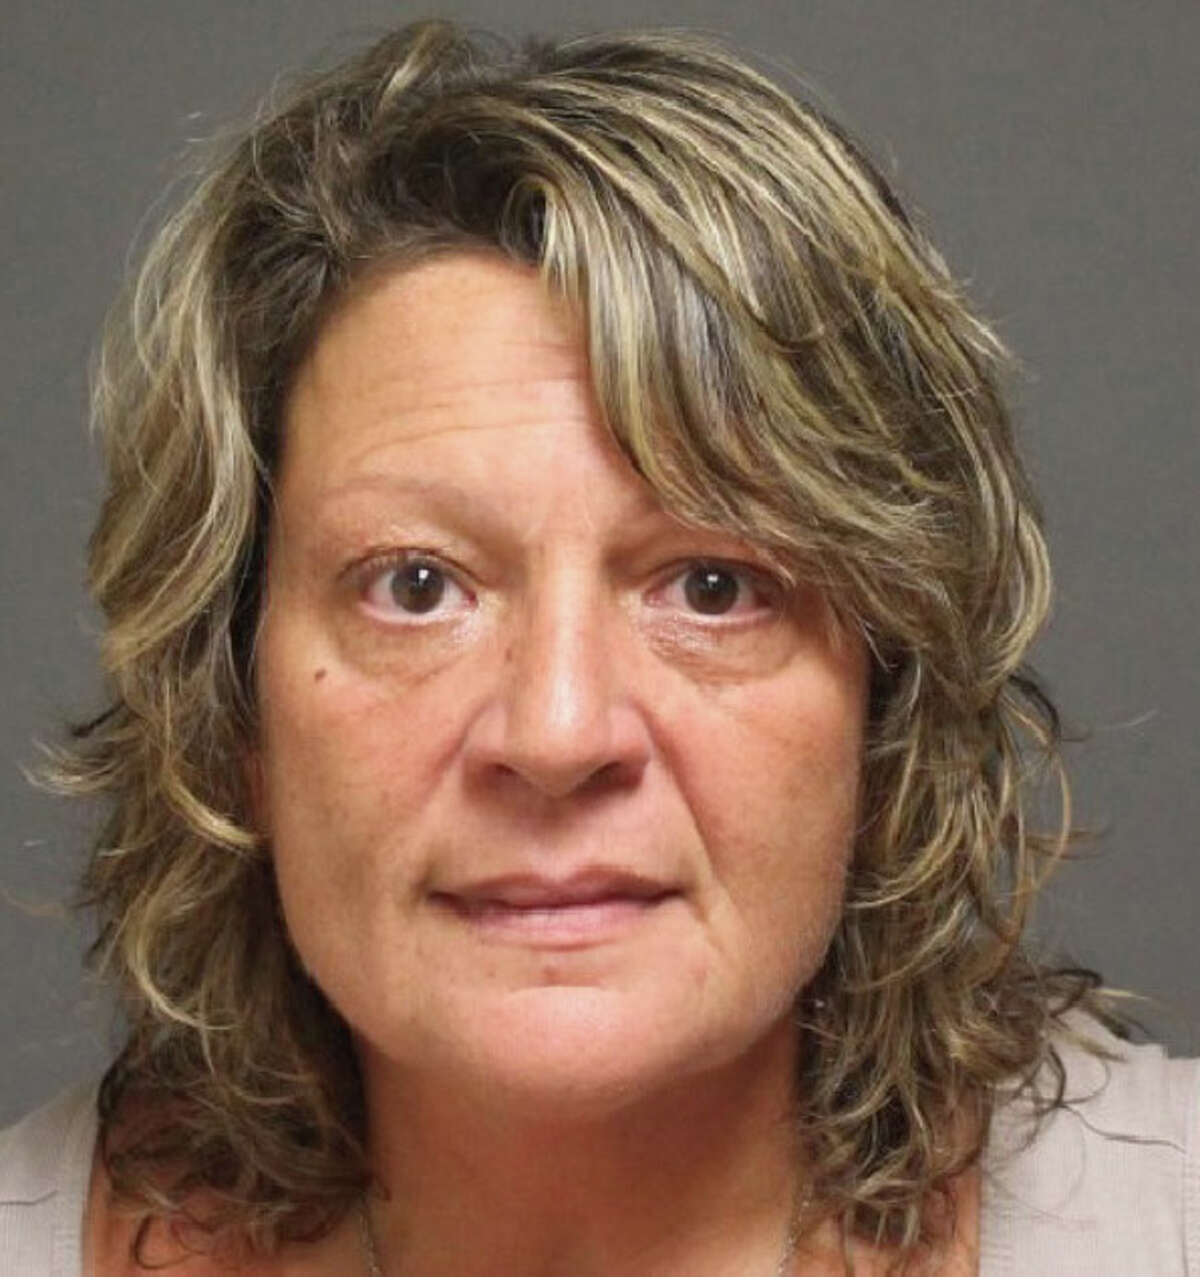 Carol Cardillo, 54, of Edgewood Road, has been charged with manslaughter in connection with the death of an infant at an illegal home daycare center she ran at her home. Fairfield, CT. 9/8/16